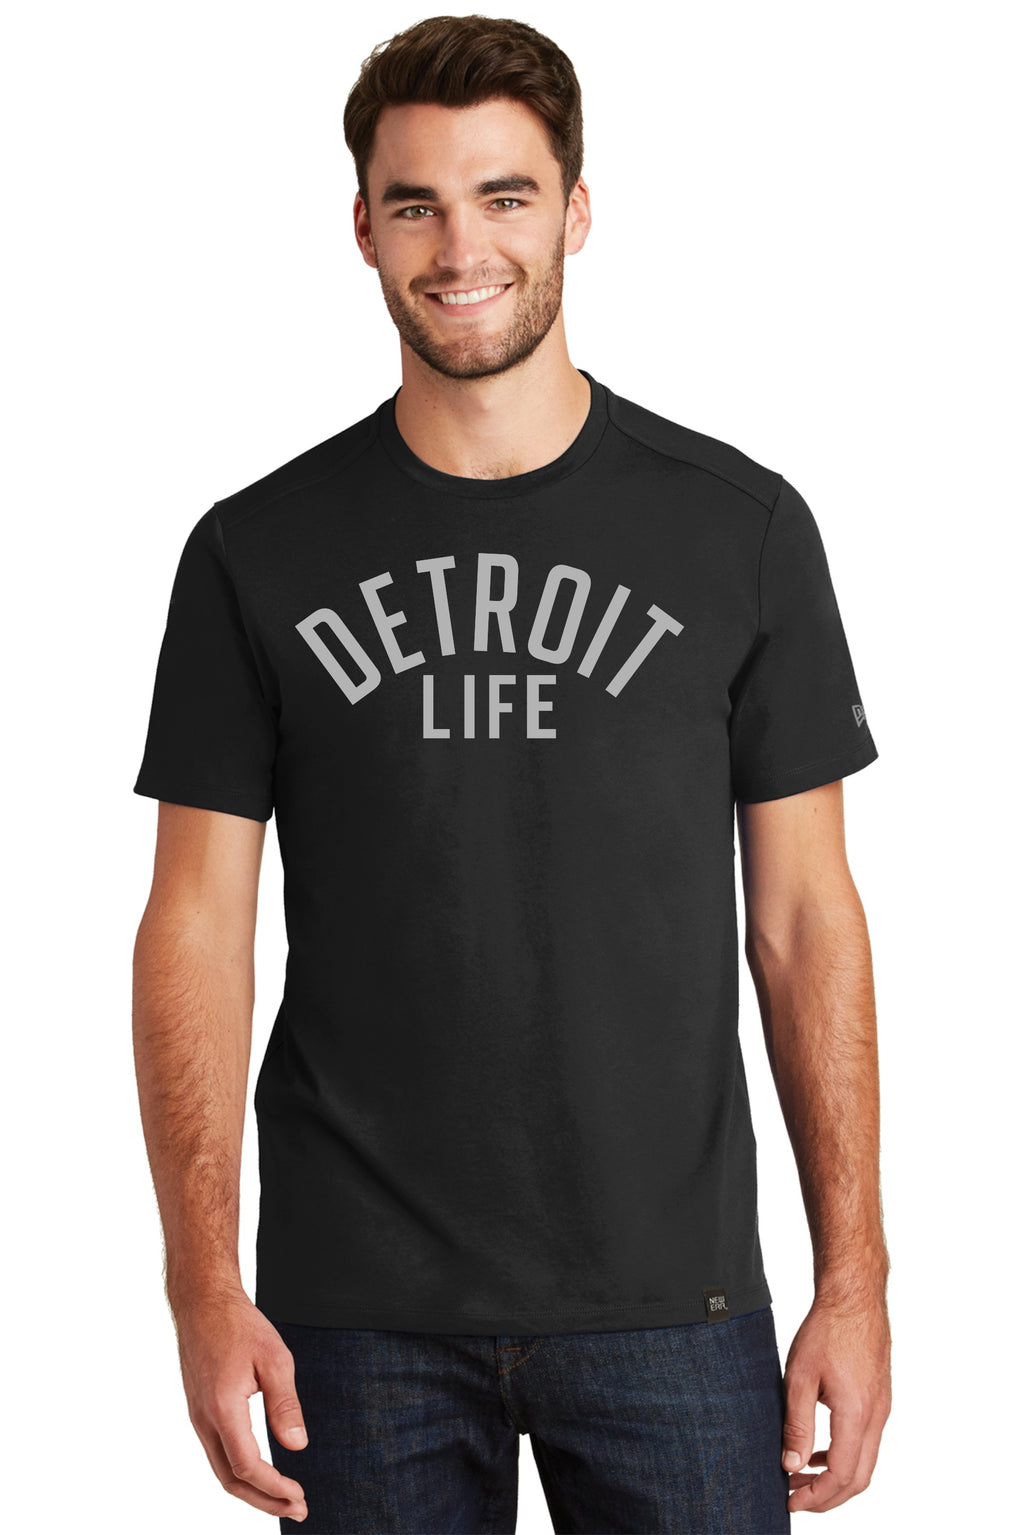 DETROIT LIFE NEW ERA T SHIRT